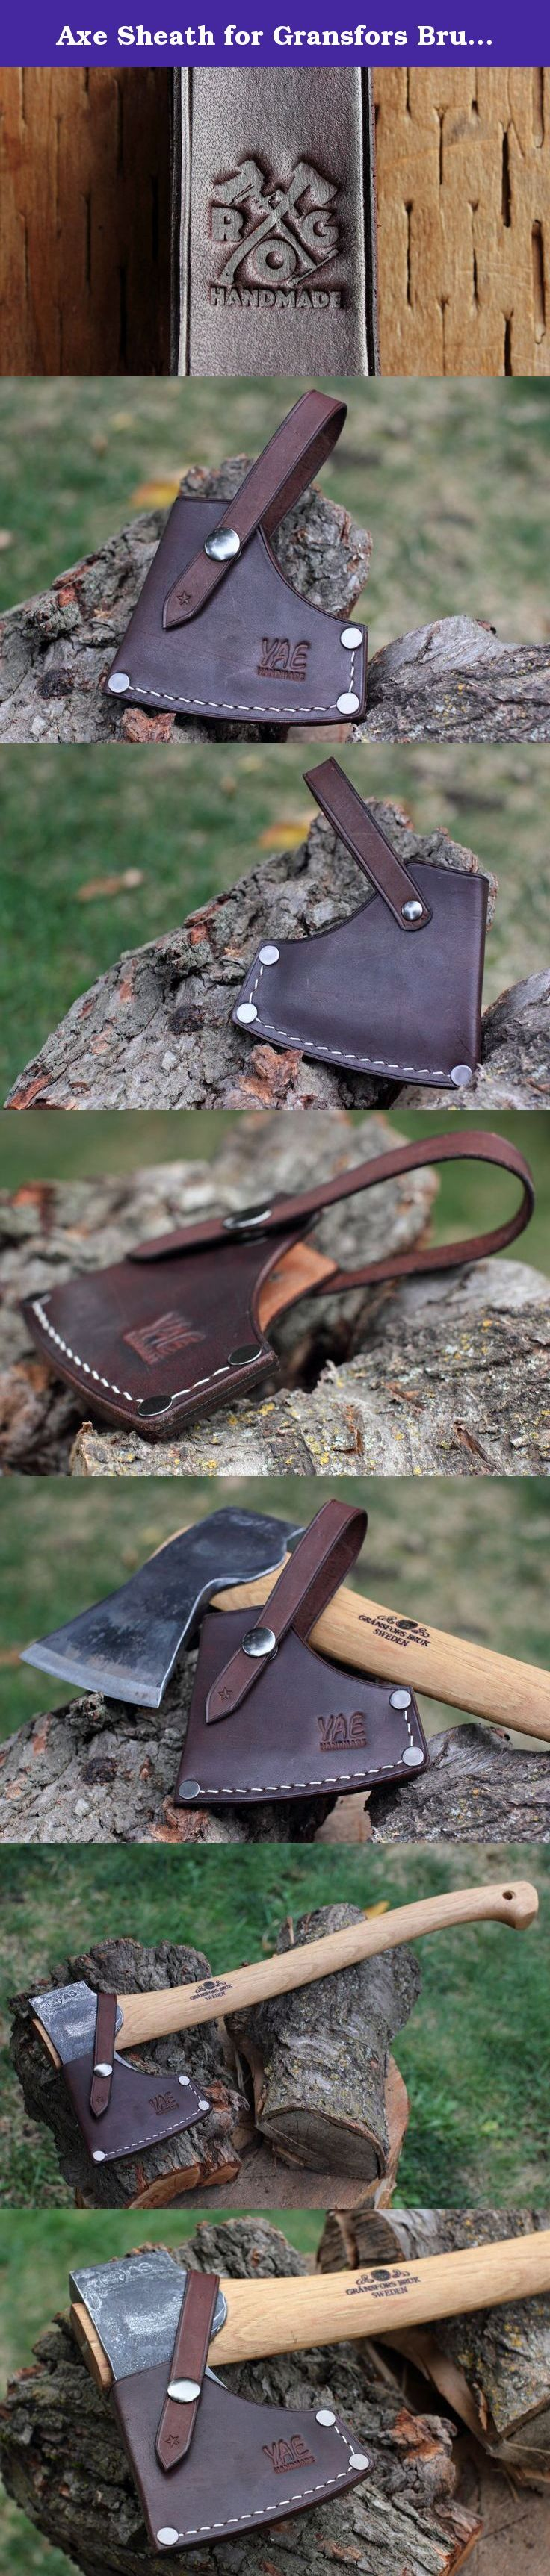 Axe Sheath for Gransfors Bruk Small Forest Axe (Dark Brown) (Dark Brown). This sheath is designed specifically and exactly for the Gransfors Bruks (or Bruk) Small Forest Axe Axe. It is made out of full-grain vegetable-tanned cowhide. You can leave it this way, or you can treat it with an oil/product of your choice. The sheath is handmade in Spokane, Washington. The construction of the sheath starts with three pieces of leather: the main body of the sheath, the securing strap and the welt....